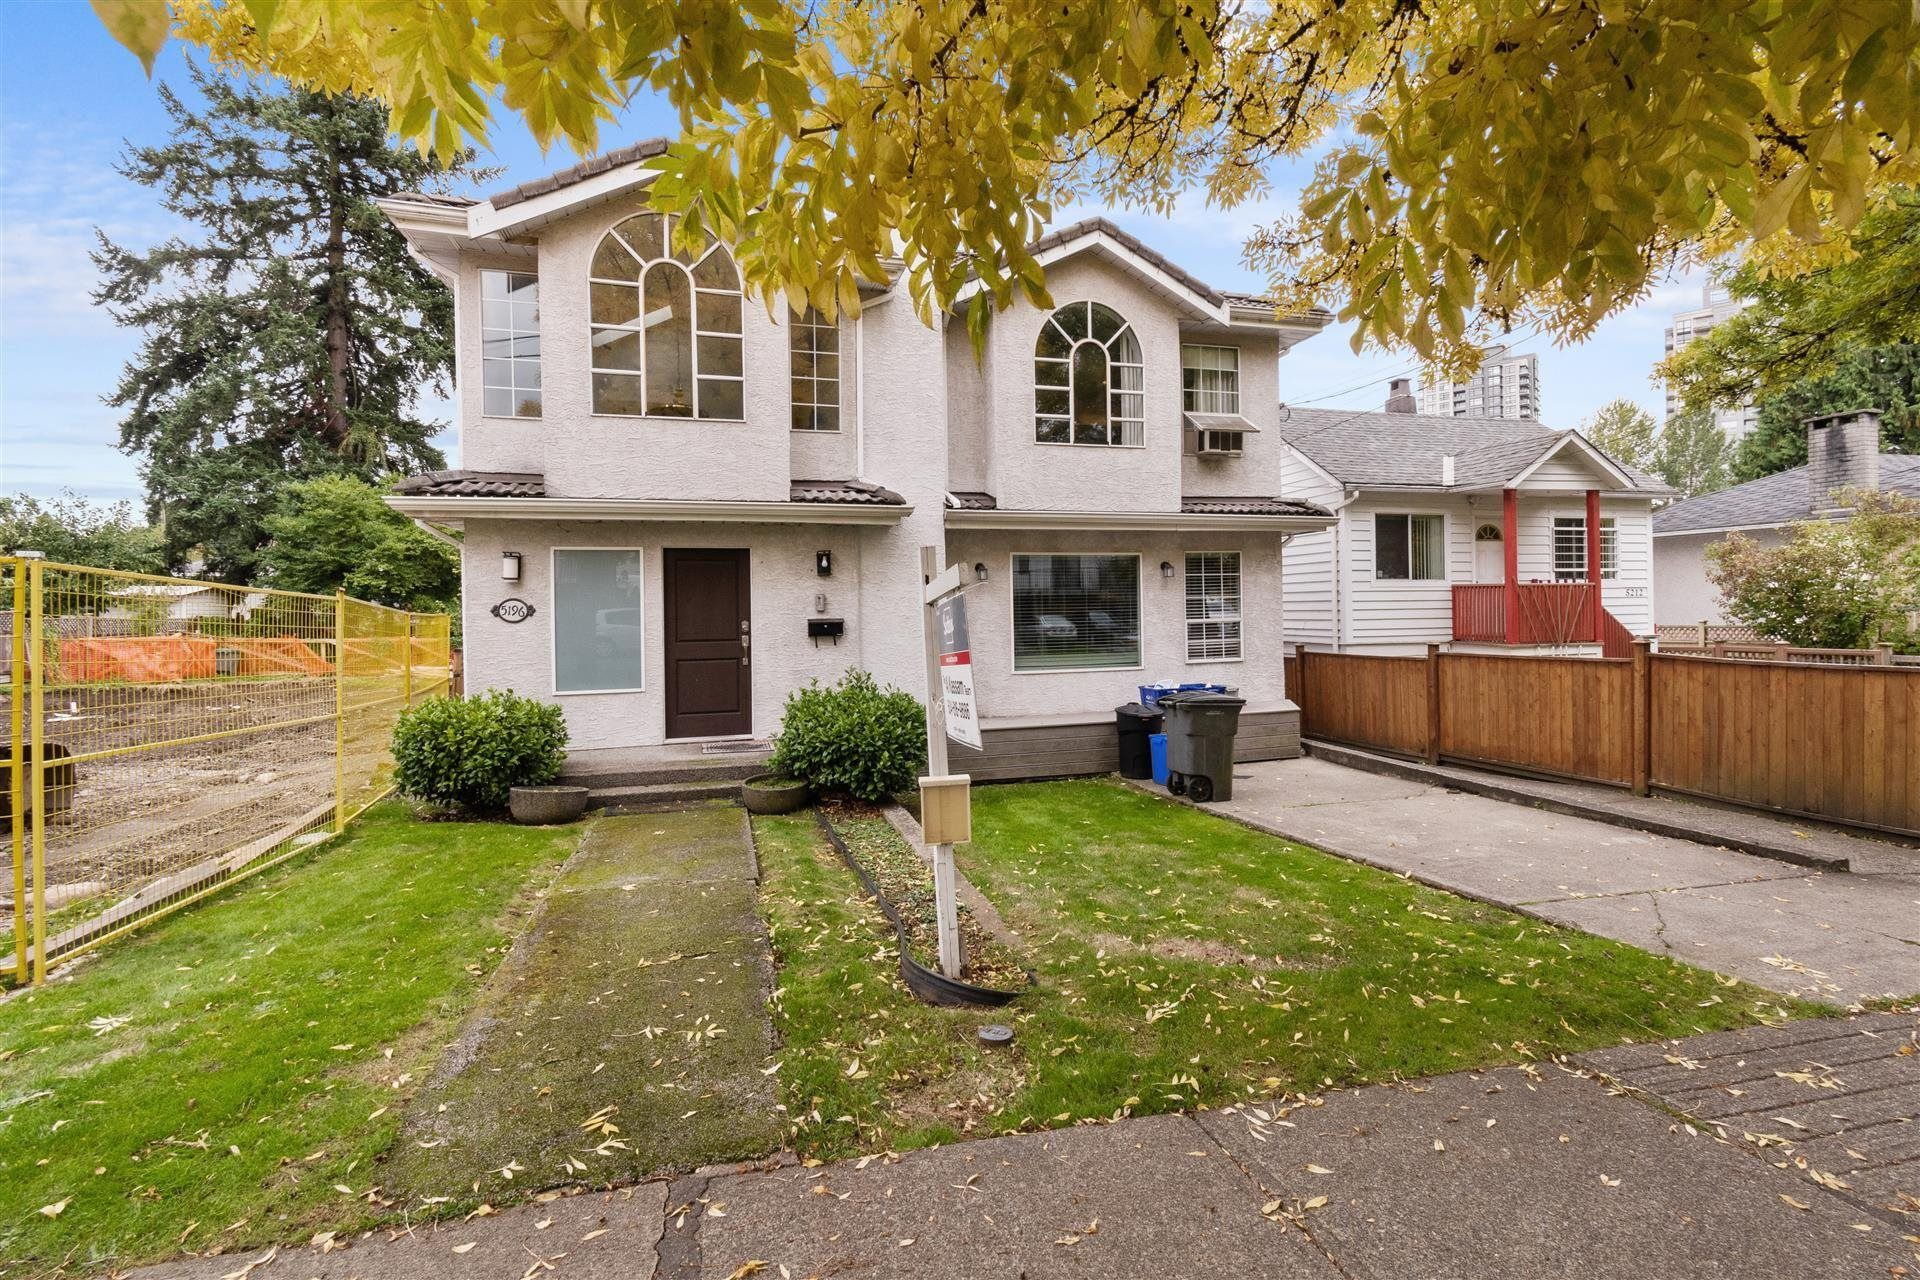 Main Photo: 5196 ABERDEEN Street in Vancouver: Collingwood VE House for sale (Vancouver East)  : MLS®# R2623398